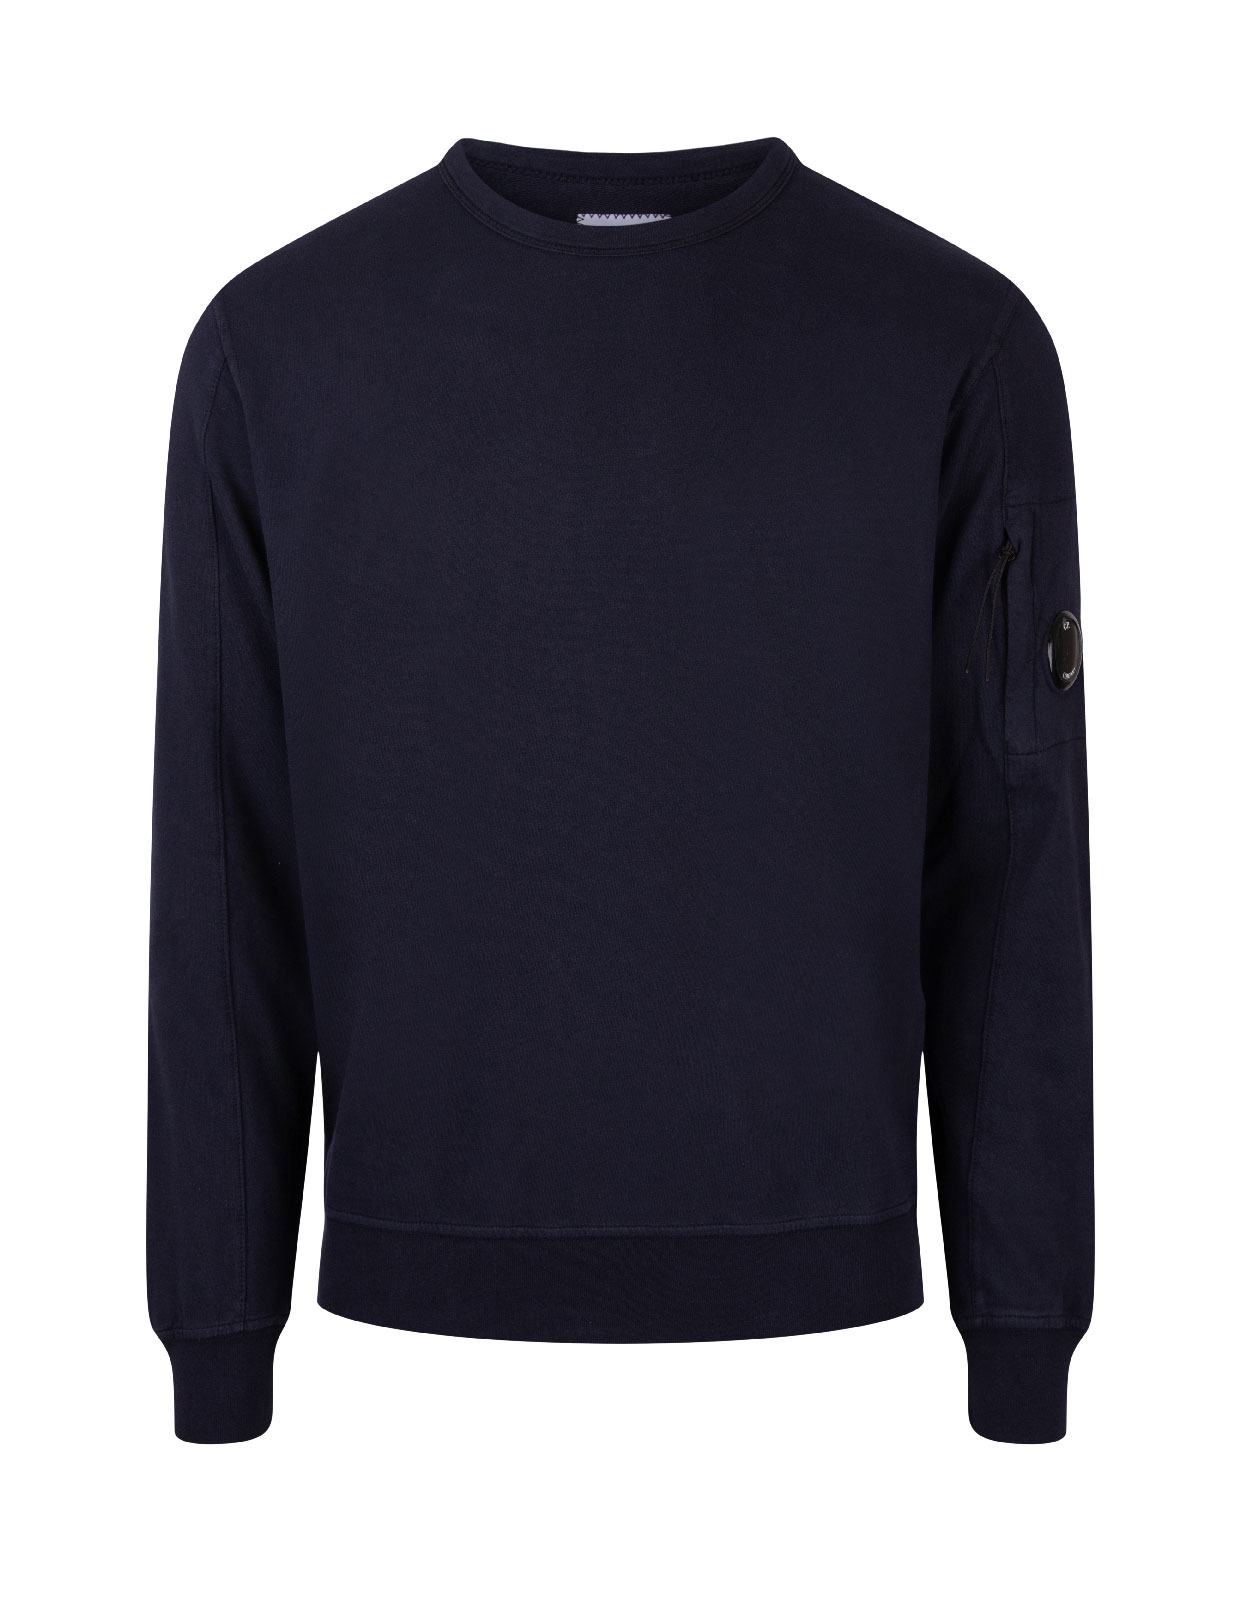 Light Fleece Garment Dyed Sweatshirt Total Eclipse